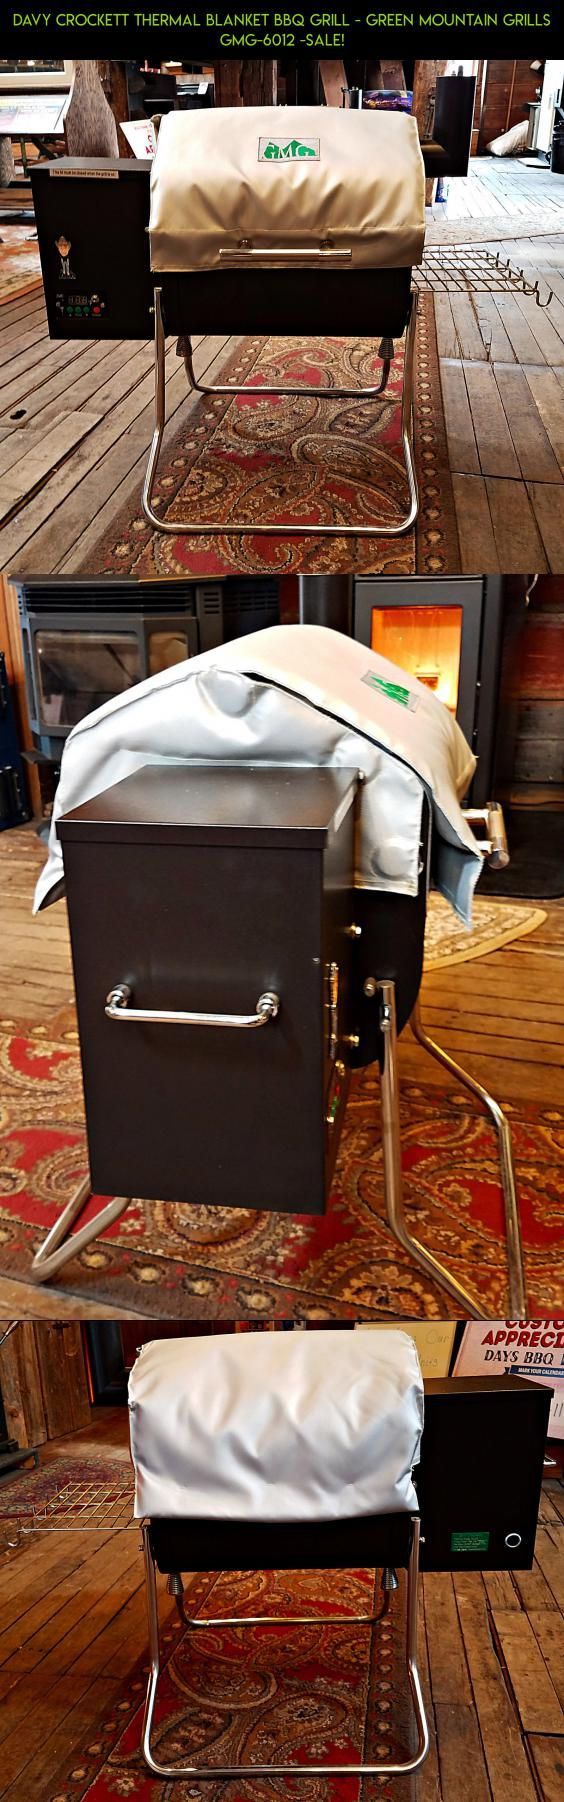 Davy Crockett Thermal Blanket BBQ Grill - Green Mountain Grills GMG-6012 -SALE! #fpv #davy #kit #green #crockett #tech #products #gadgets #grills #plans #mountain #drone #camera #technology #parts #shopping #racing